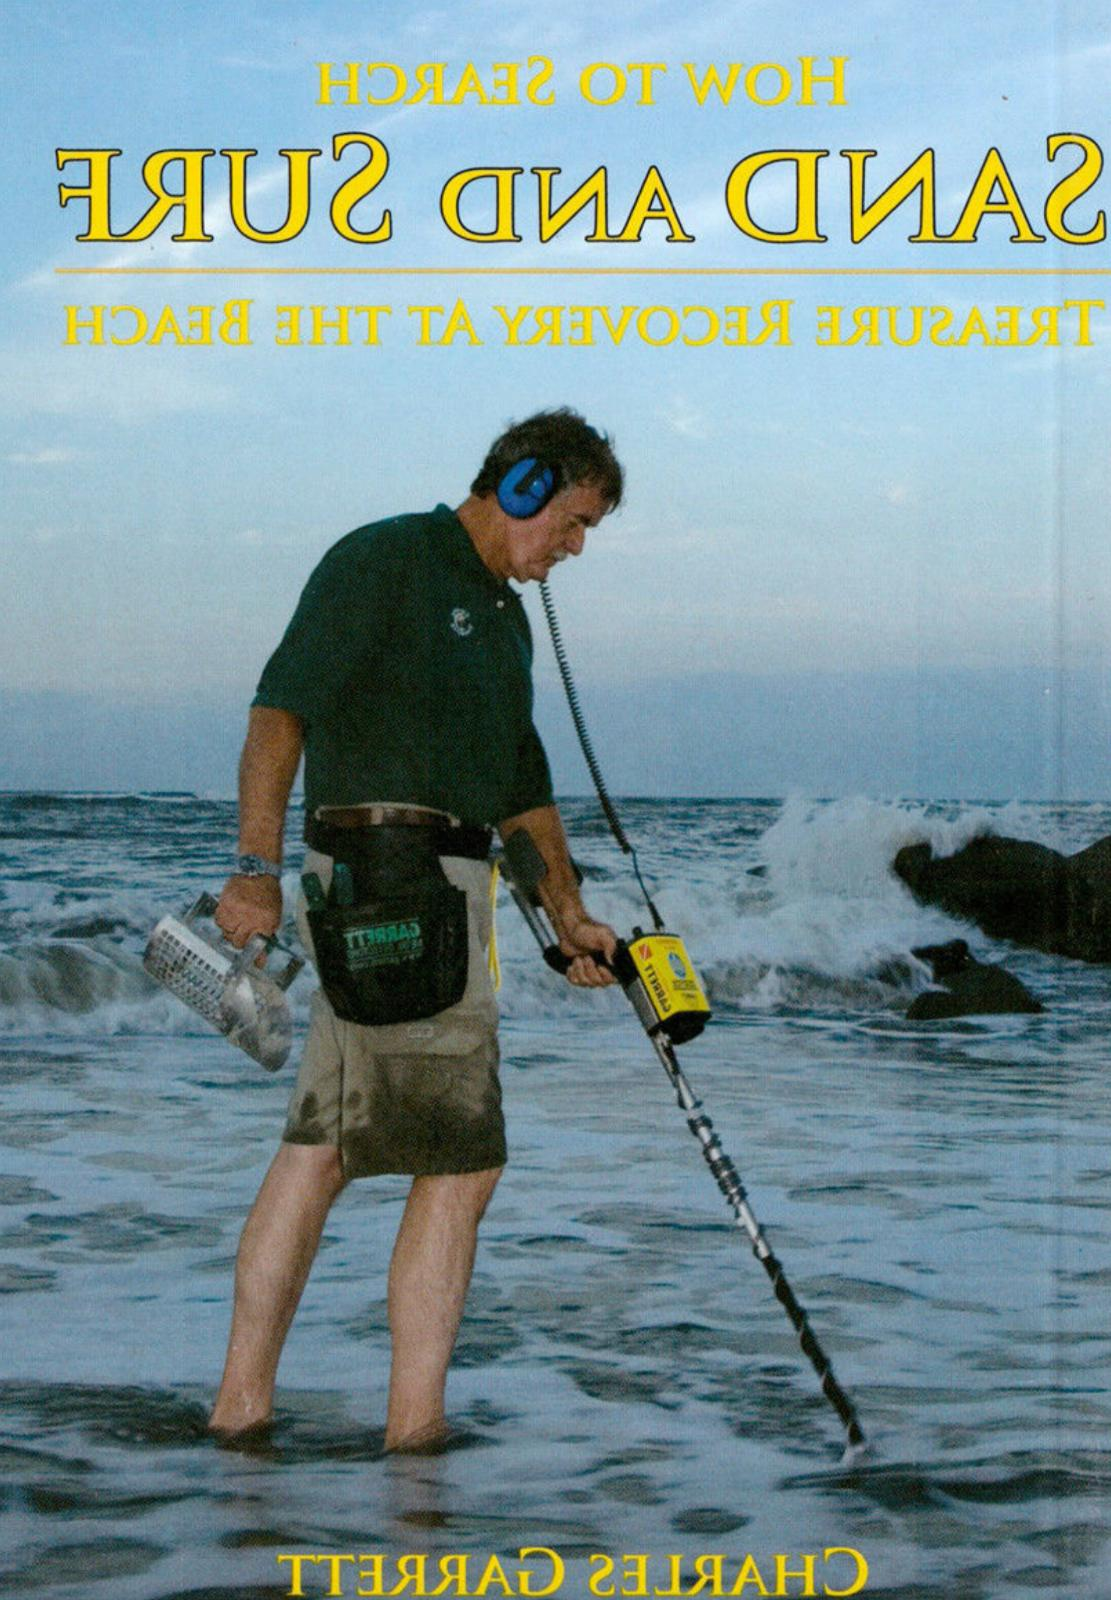 how to search sand and surf recovery